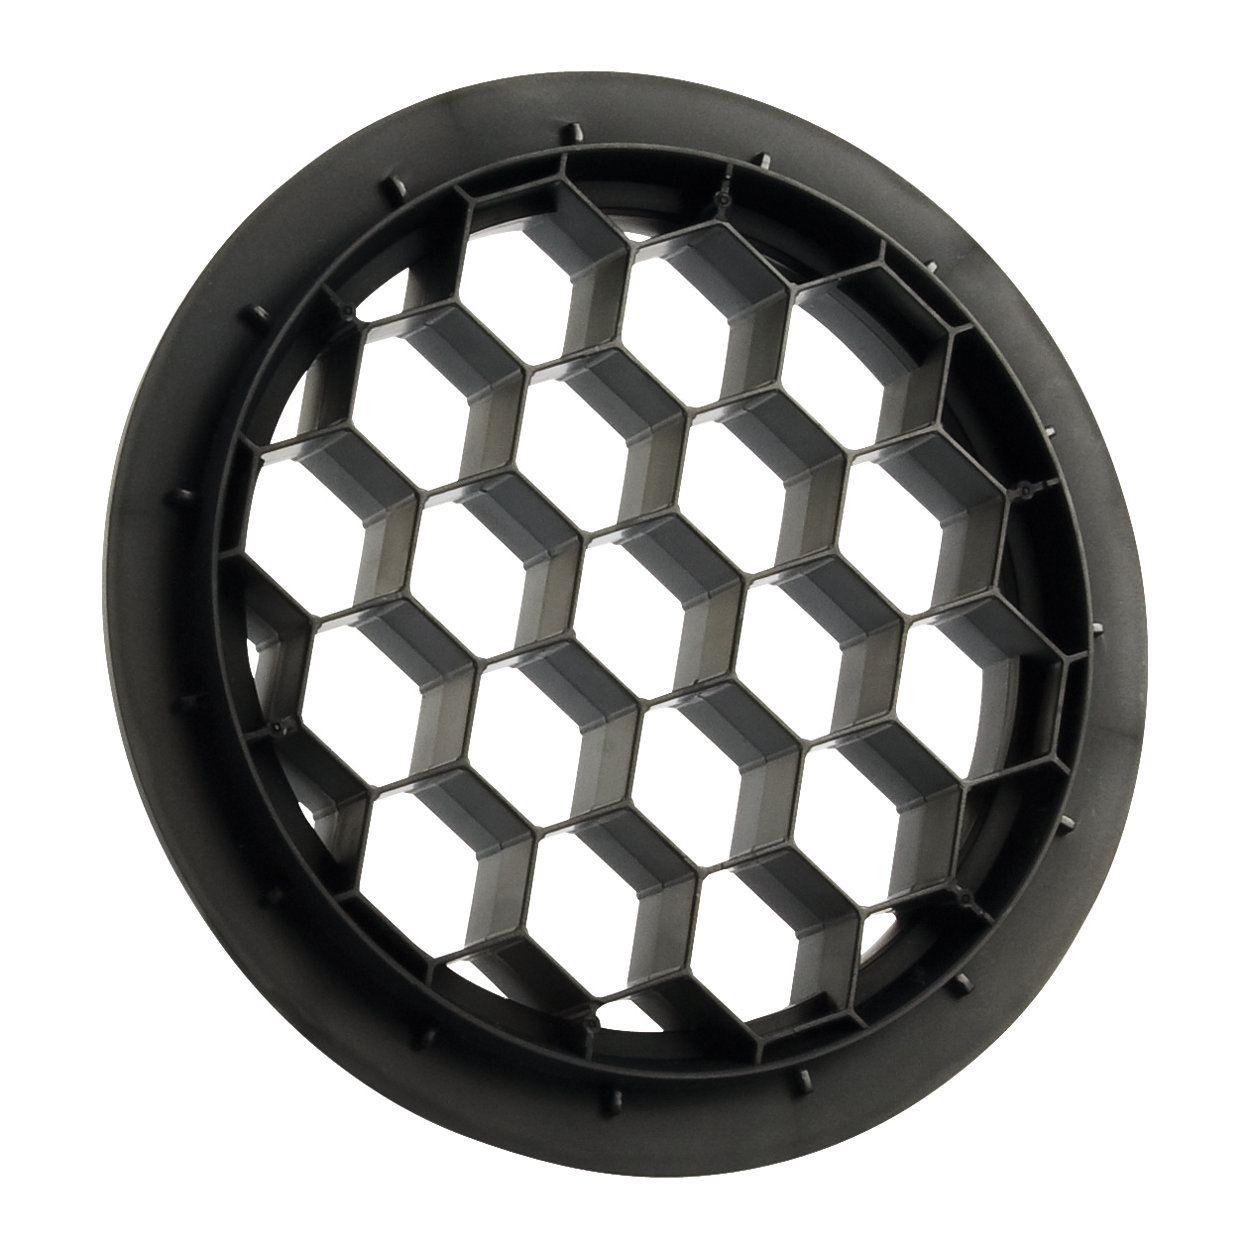 eW Burst Compact Powercore – Compact architectural and landscape LED spotlight with solid white light